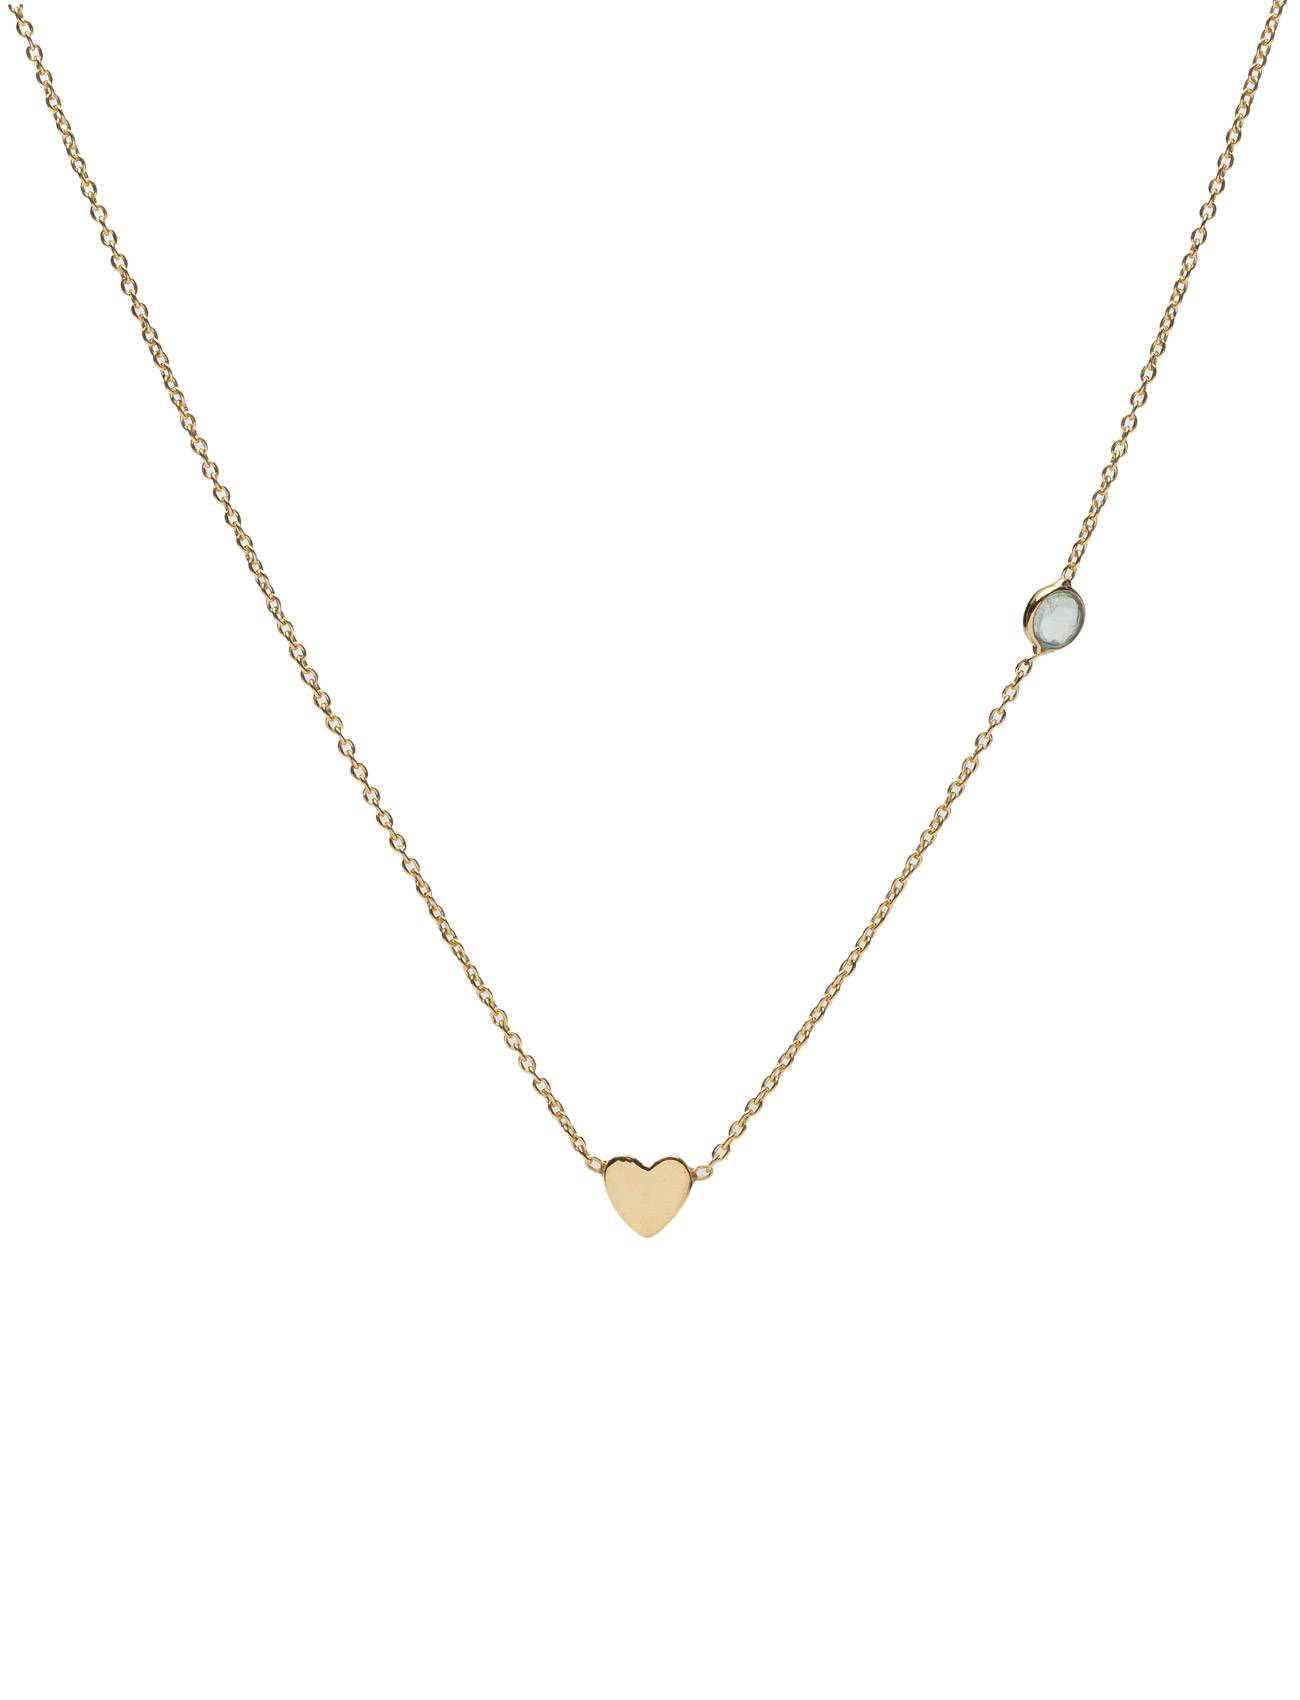 Syster P Sparkle Necklace Gold Heart Green Aventurine